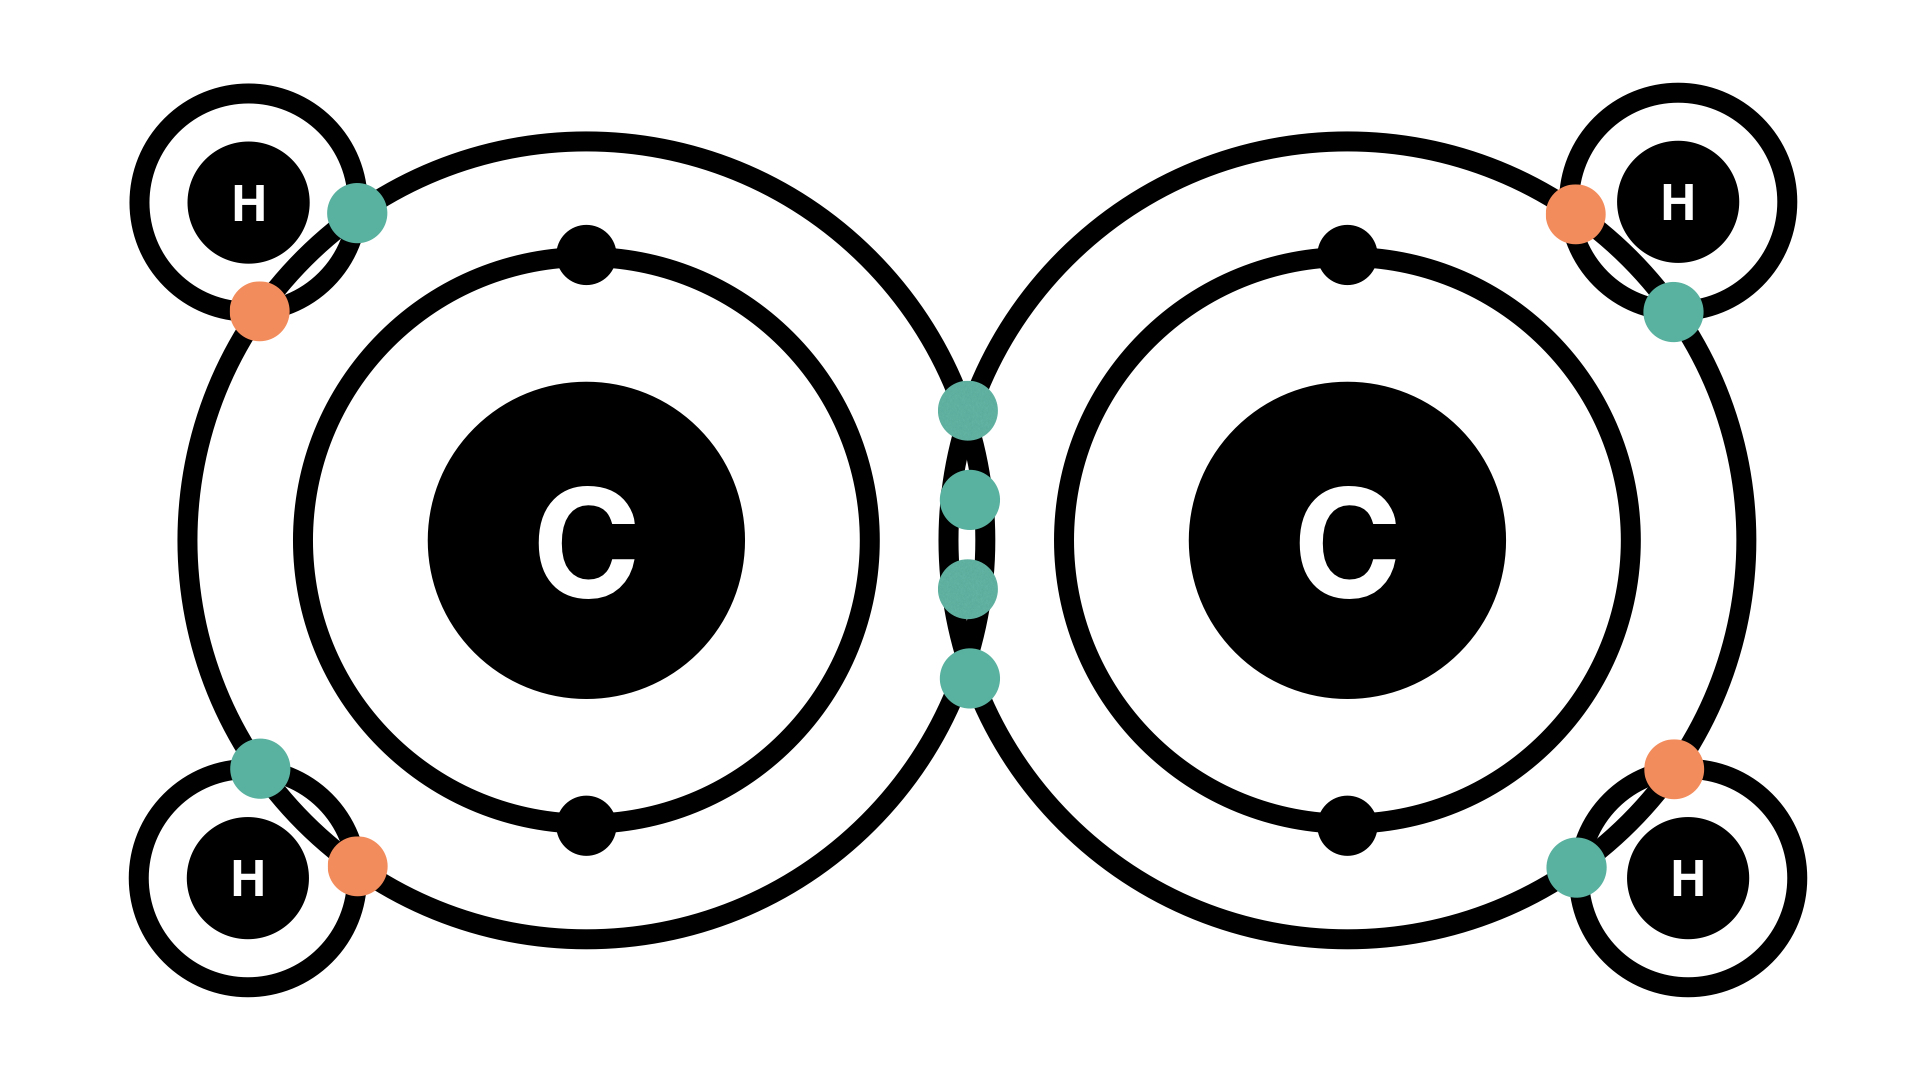 a covalent chemical bond